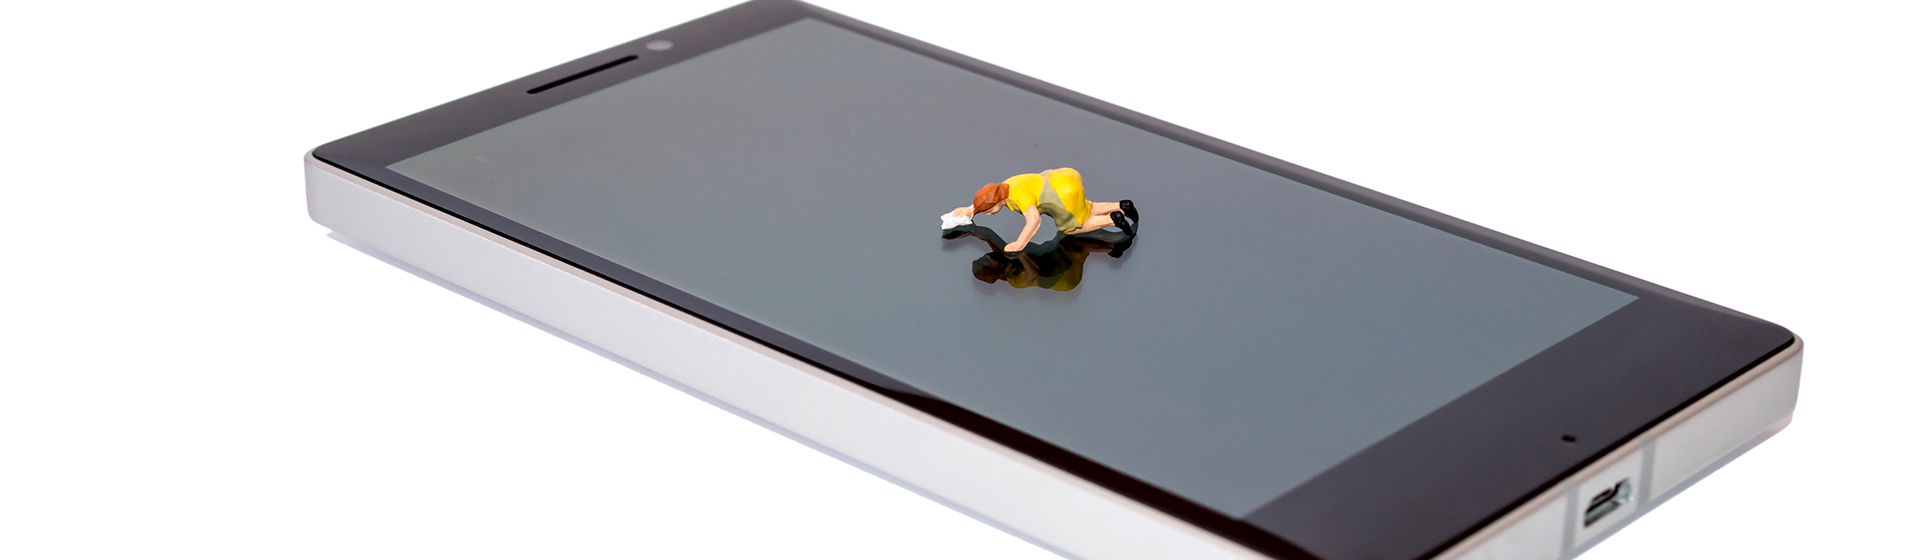 How to Safely Clean Your Smartphone